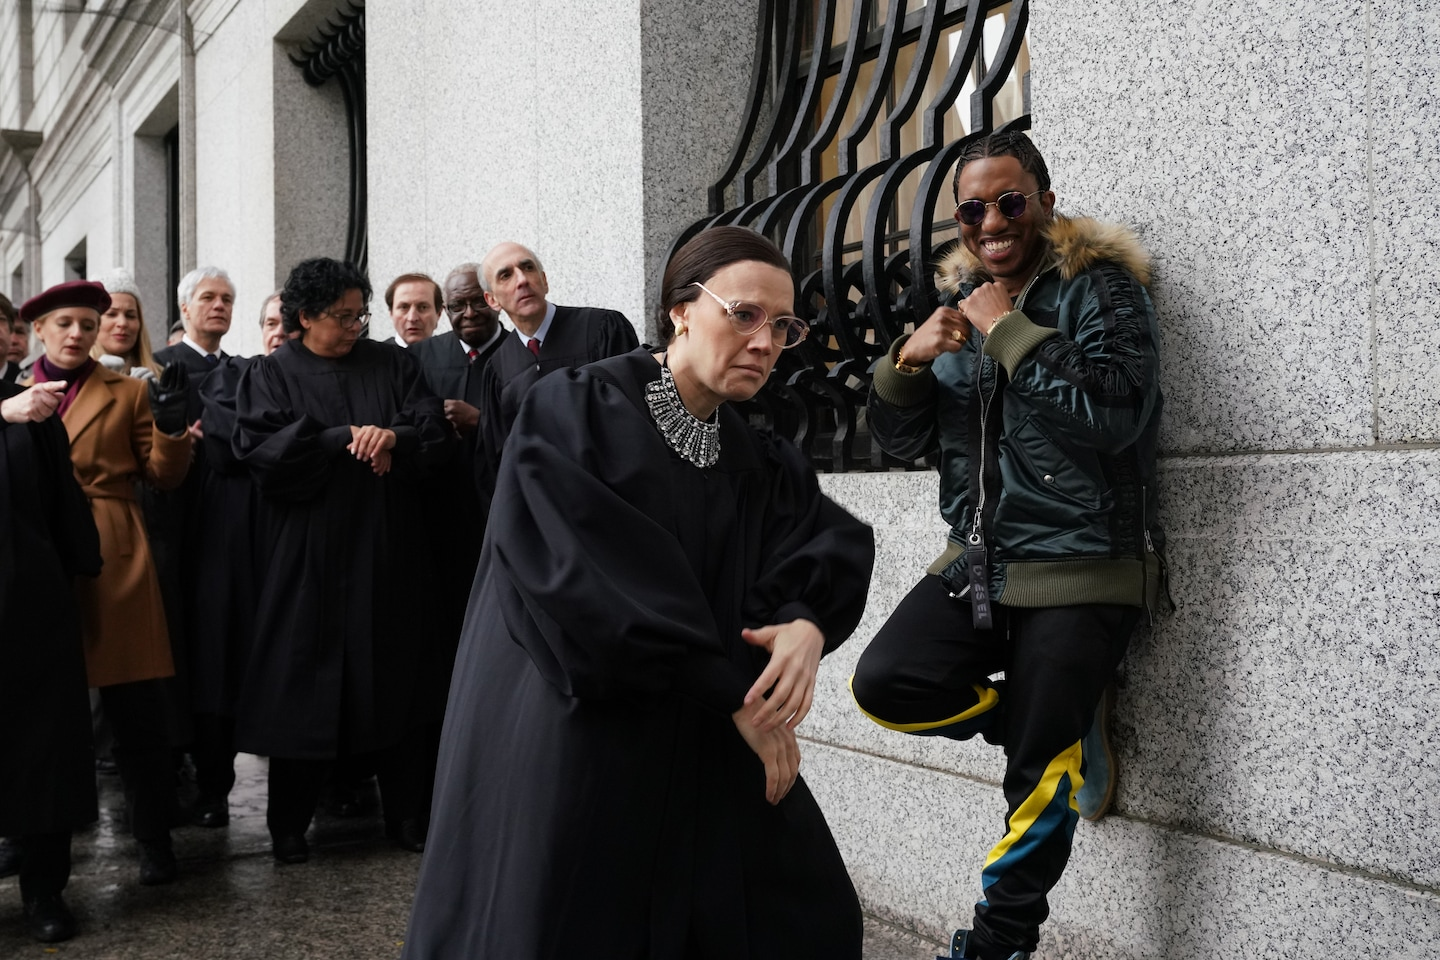 SNL rides for Ruth Bader Ginsburg in a new rap video, with Kate McKinnon in a blinged-out collar